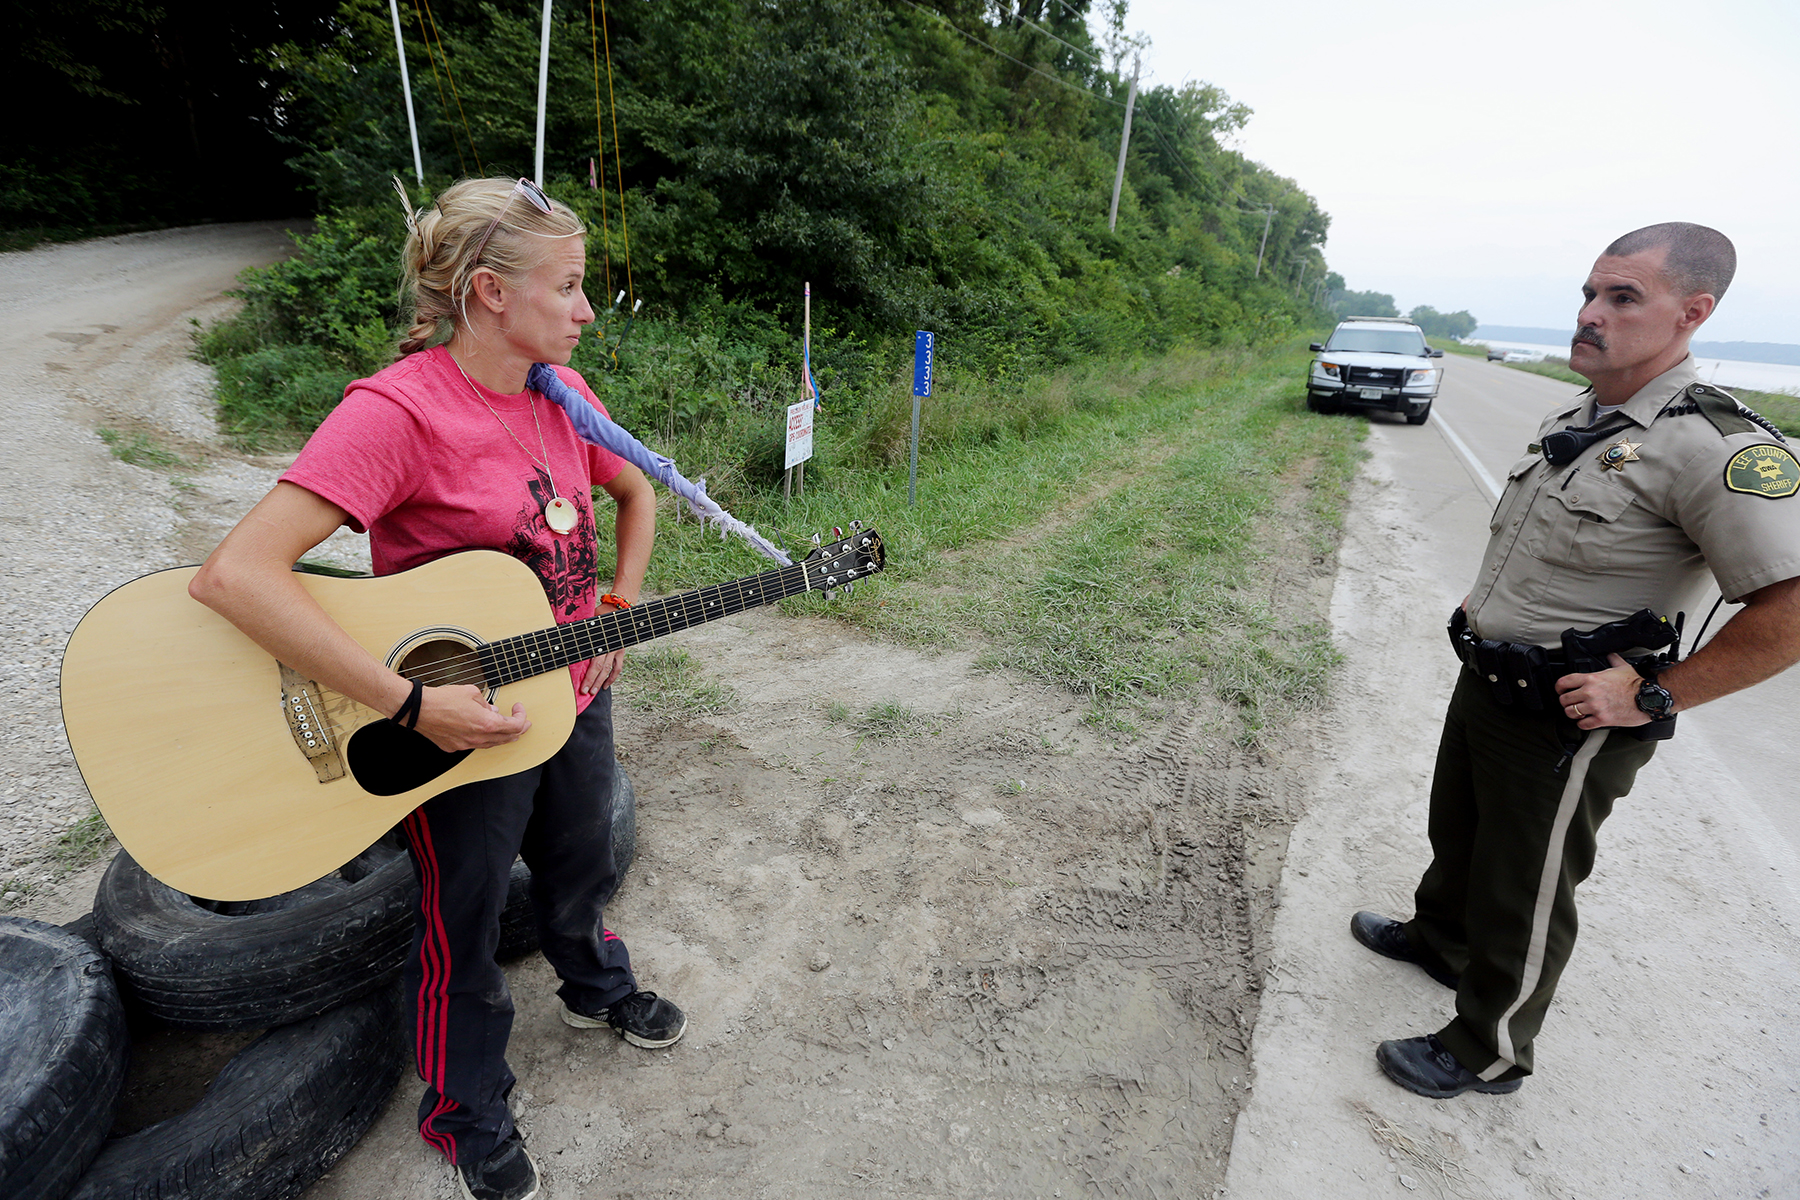 Activist Jessica Reznicek, talks with Lee County Sheriff's Deputy Steve Sproul while conducting a personal occupation and protesting the Bakken pipeline, Tuesday Aug. 30, 2016 at a pipeline construction site, along the Mississippi River Road near Keokuk, Iowa. Reznicek, a Des Moines Catholic Workers group member, was later taken into custody at about noon Tuesday by the Lee County Sheriff's Department. (John Lovretta/The Hawk Eye via AP)